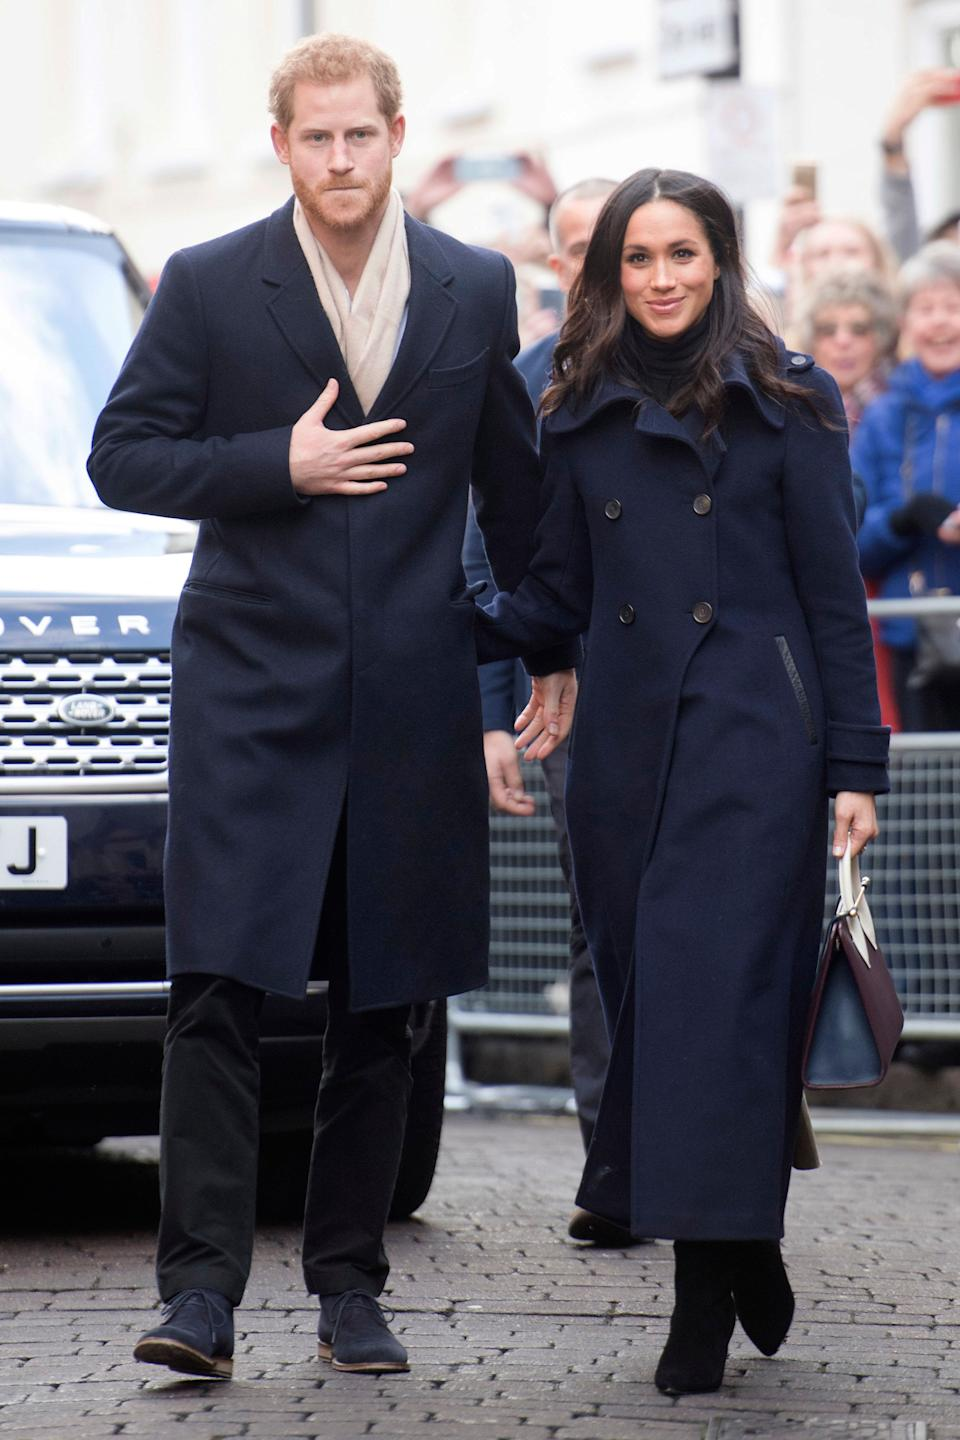 This one time in November 2017, Prince Harry and Meghan Markle wore matching dark overcoats, and now we want someone to wear matching overcoats with.